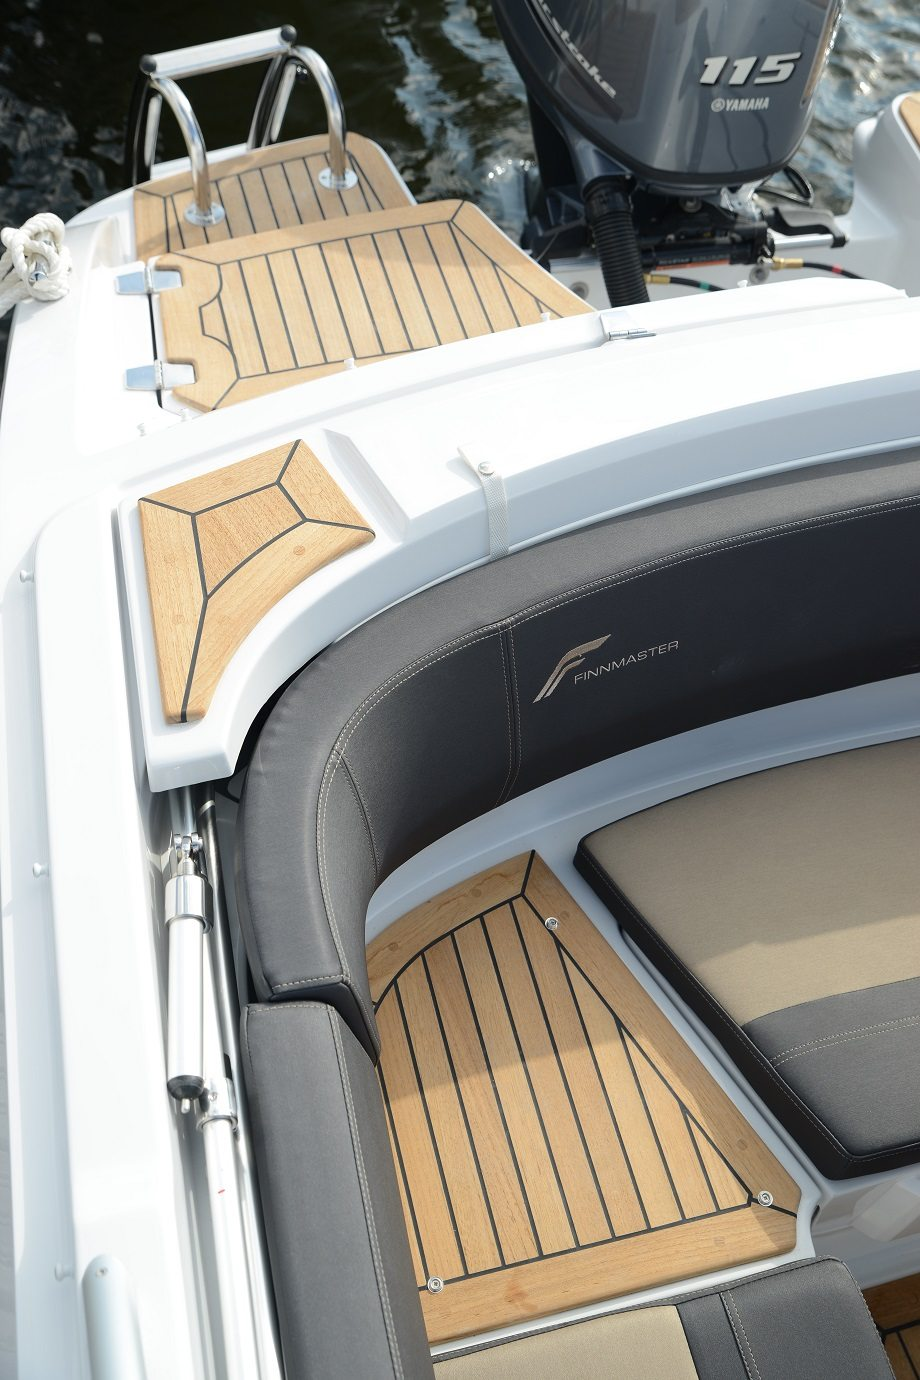 Finnmaster 62 Day Cruiser with Yamaha Outboard Engine - Canopy storage and teak decking on bathing platforms